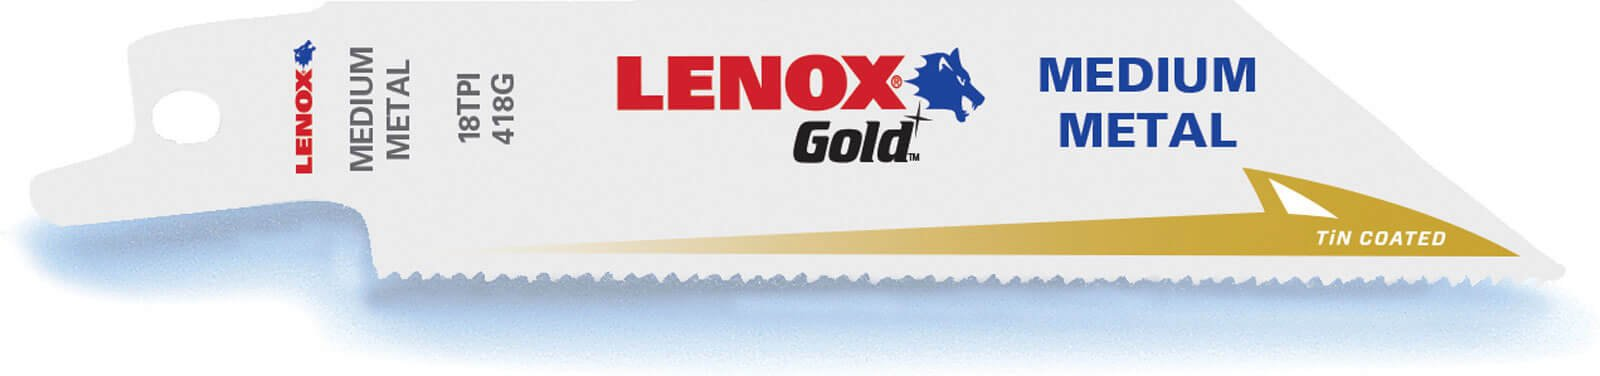 Lenox Gold 18TPI Medium Thickness Metal Cutting Reciprocating Saw Blades 102mm Pack of 5